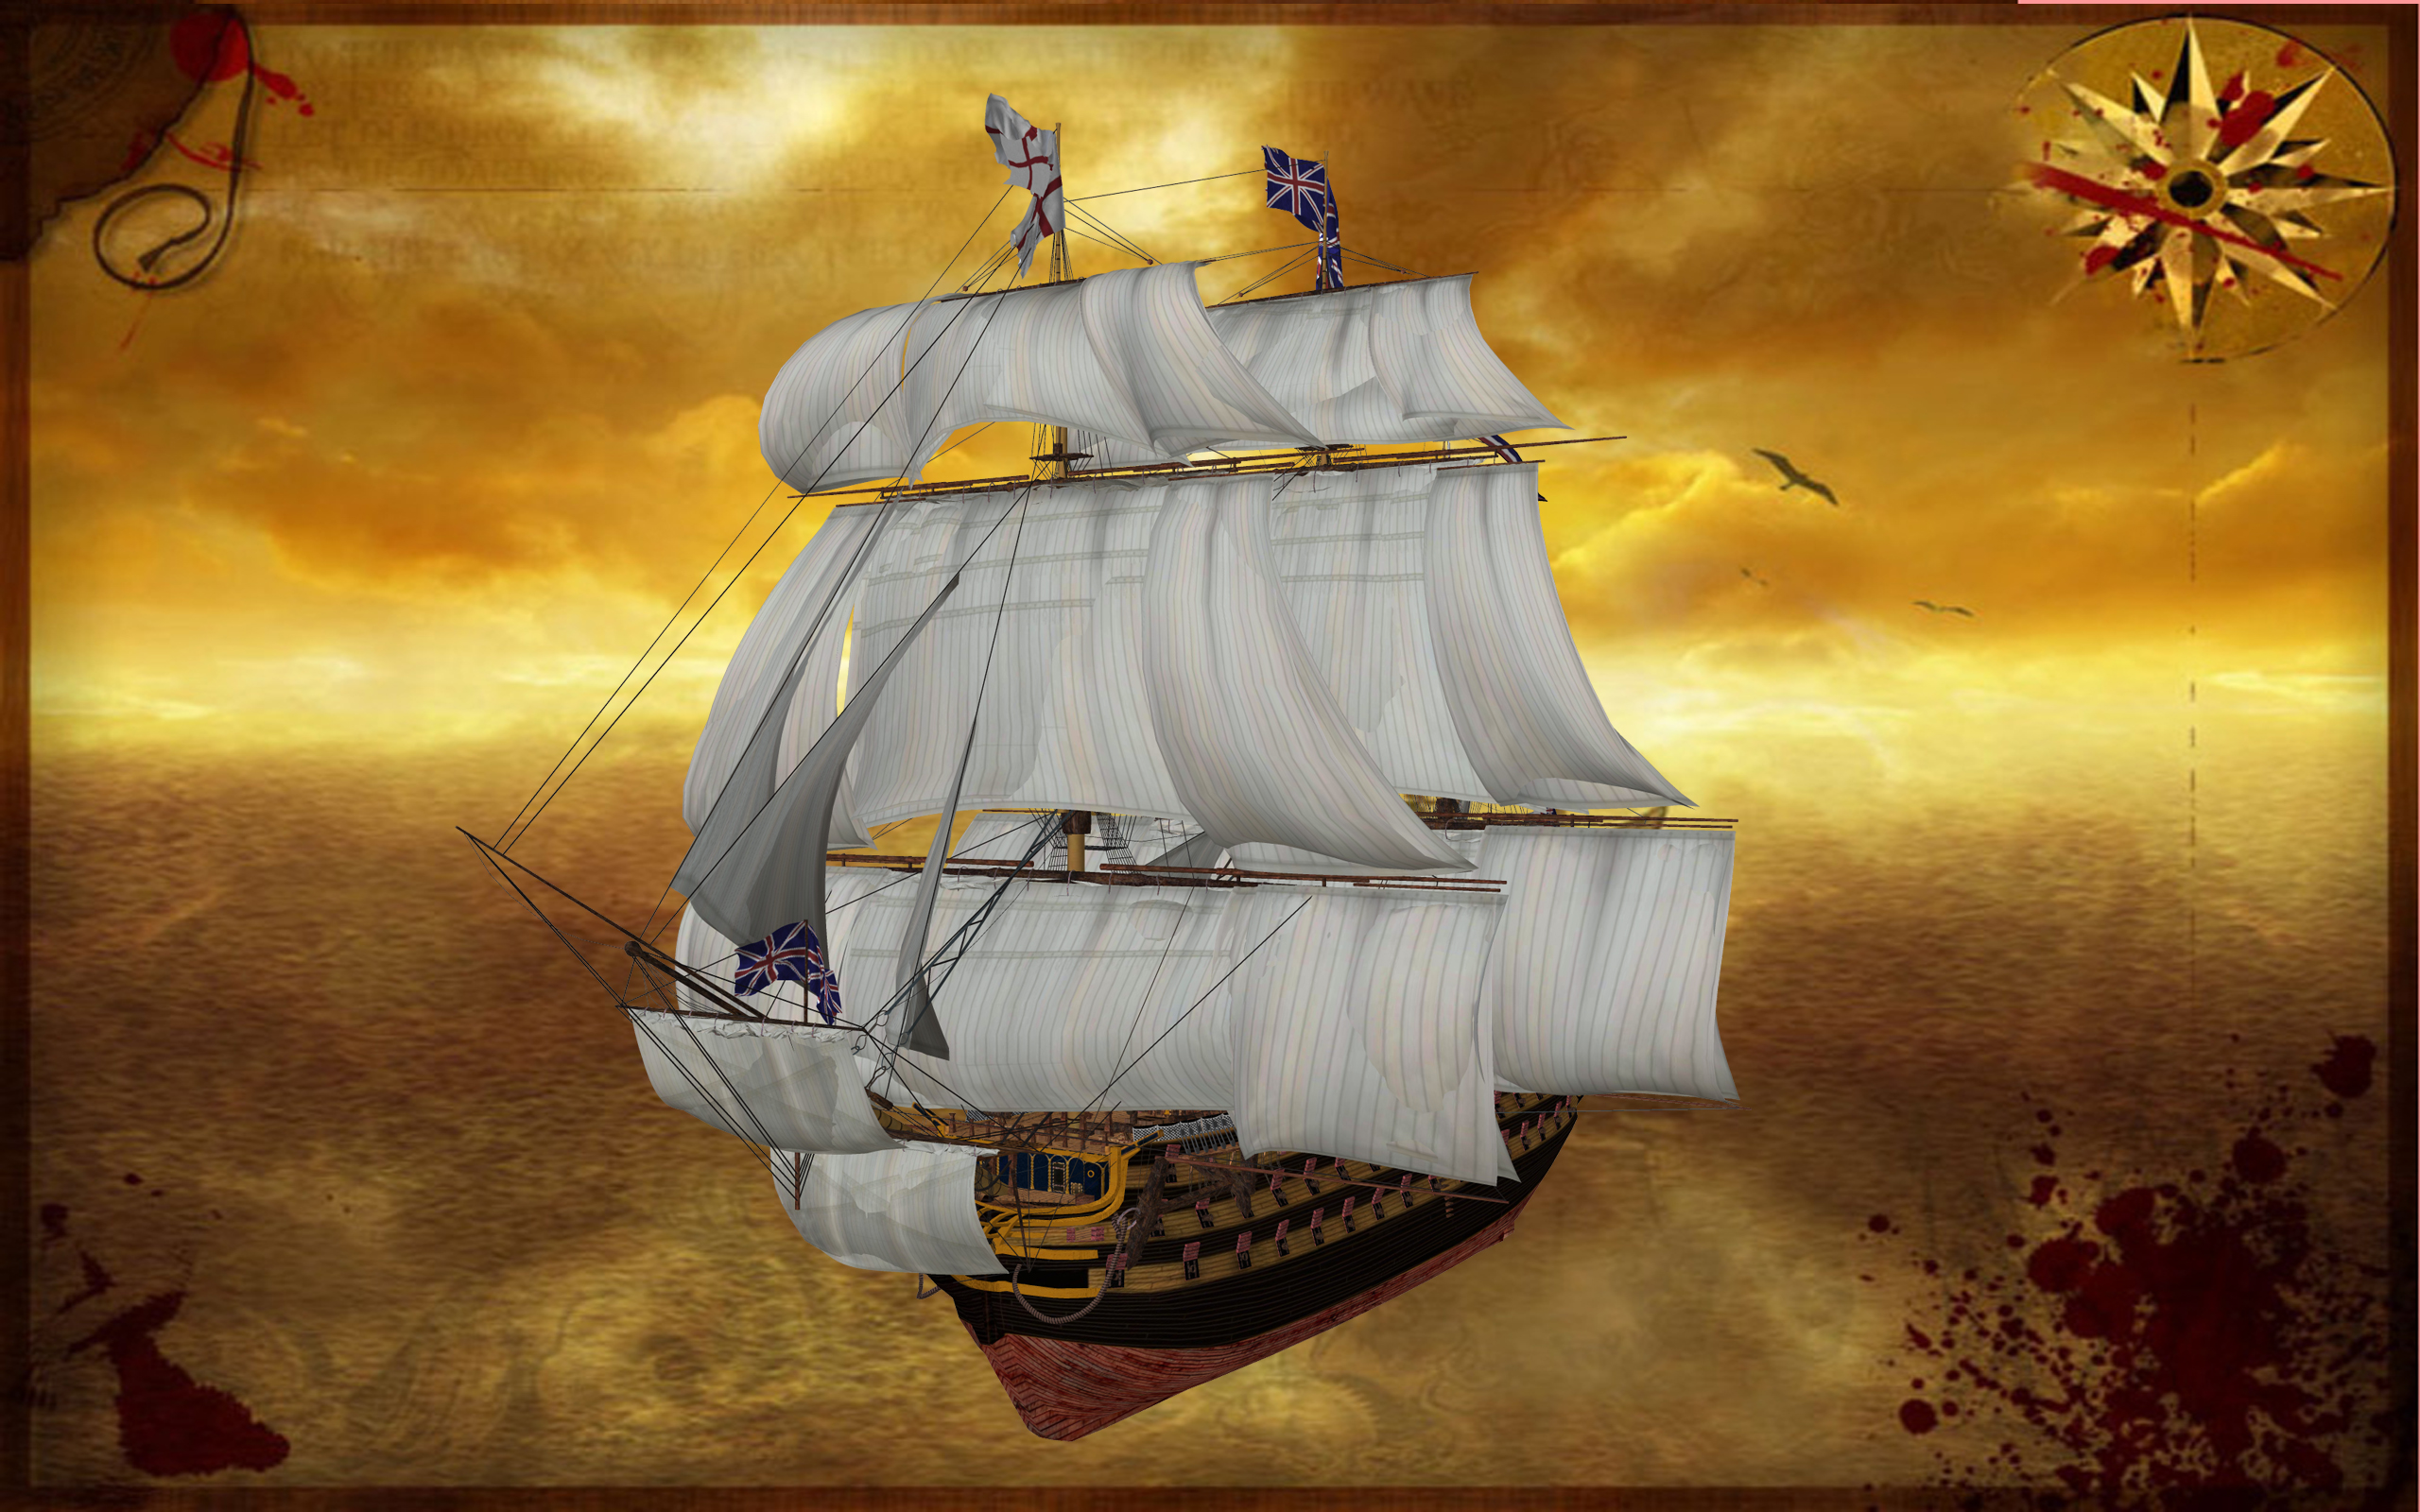 3d Cartoon Wallpapers Free Download Pirate Ship Free Wallpaper Christmas 07 Wallpapers13 Com